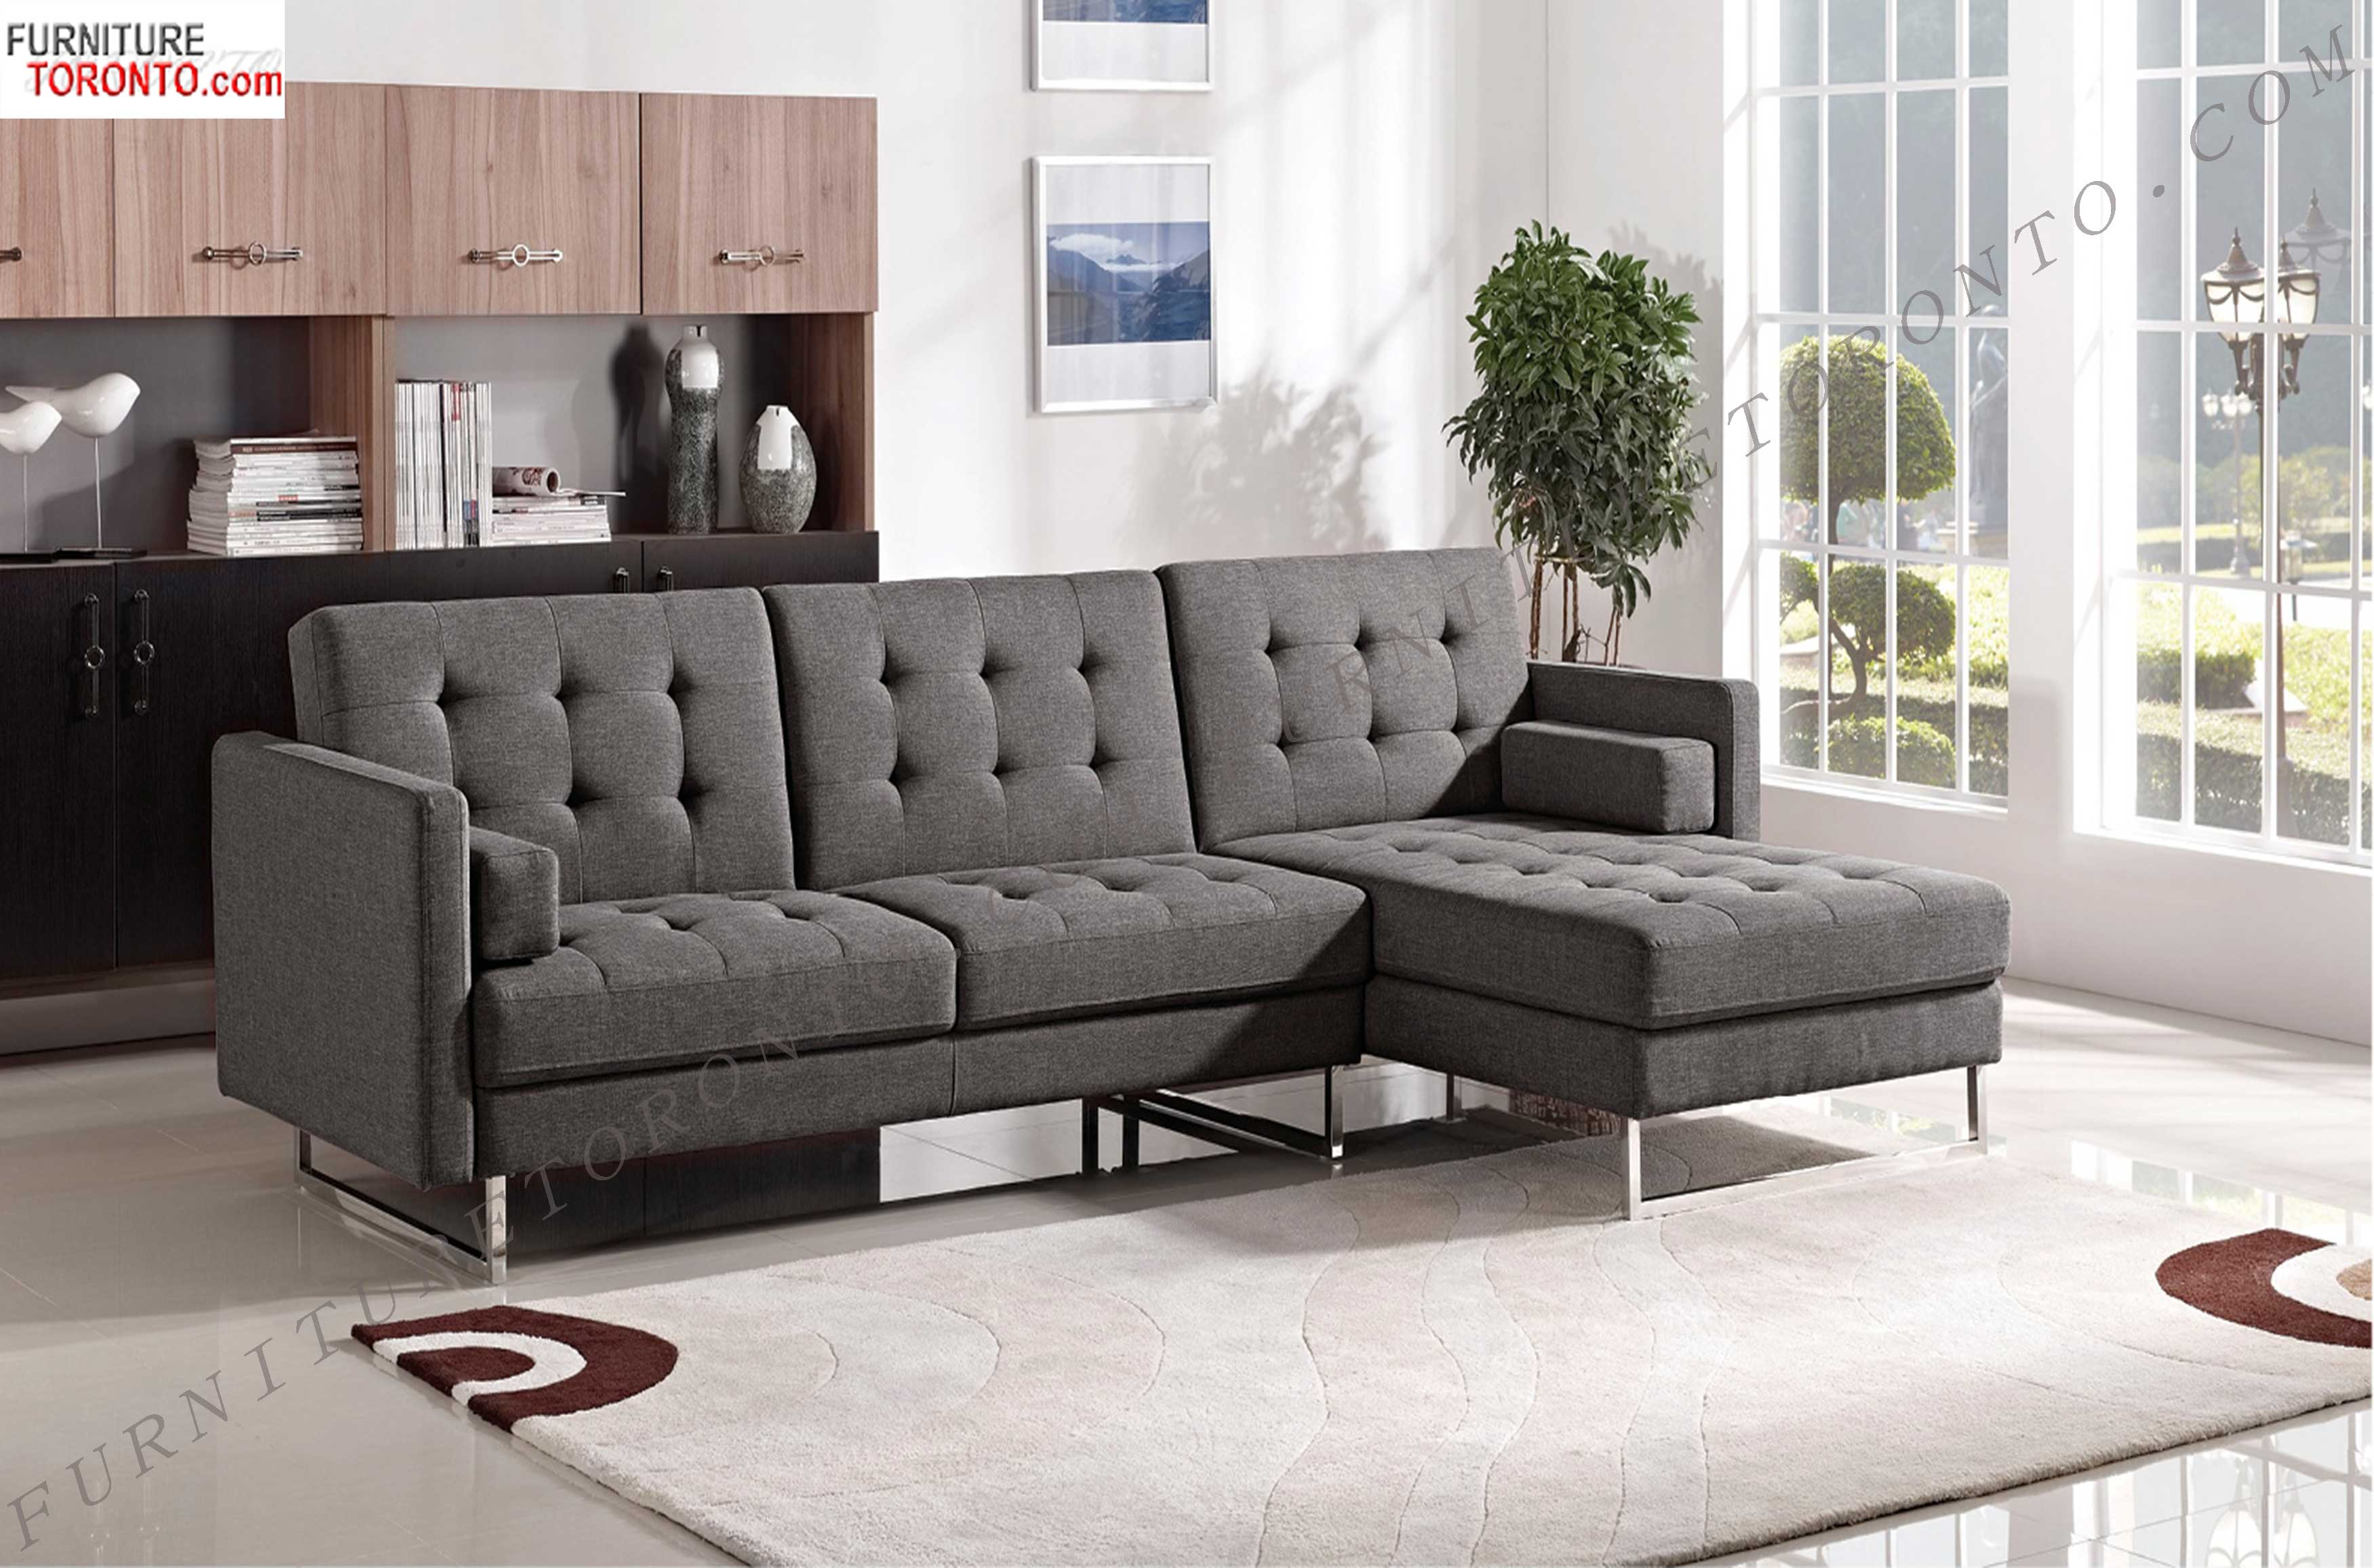 furniture toronto official website - furniture retail store for